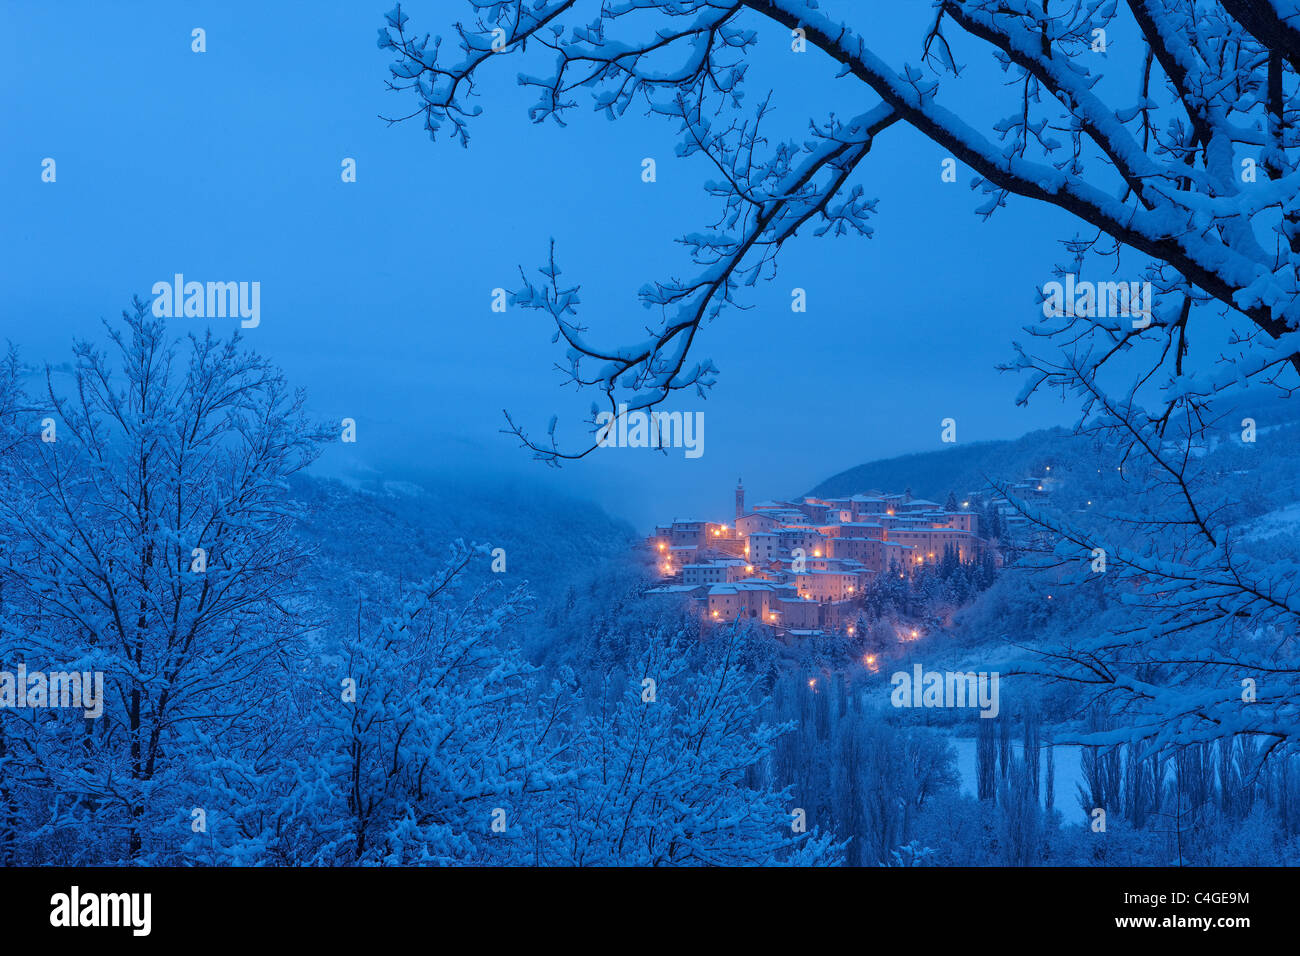 PRECI im Morgengrauen in Winter, Valnerina, Nationalpark Monti Sibillini, Umbrien, Italien Stockbild